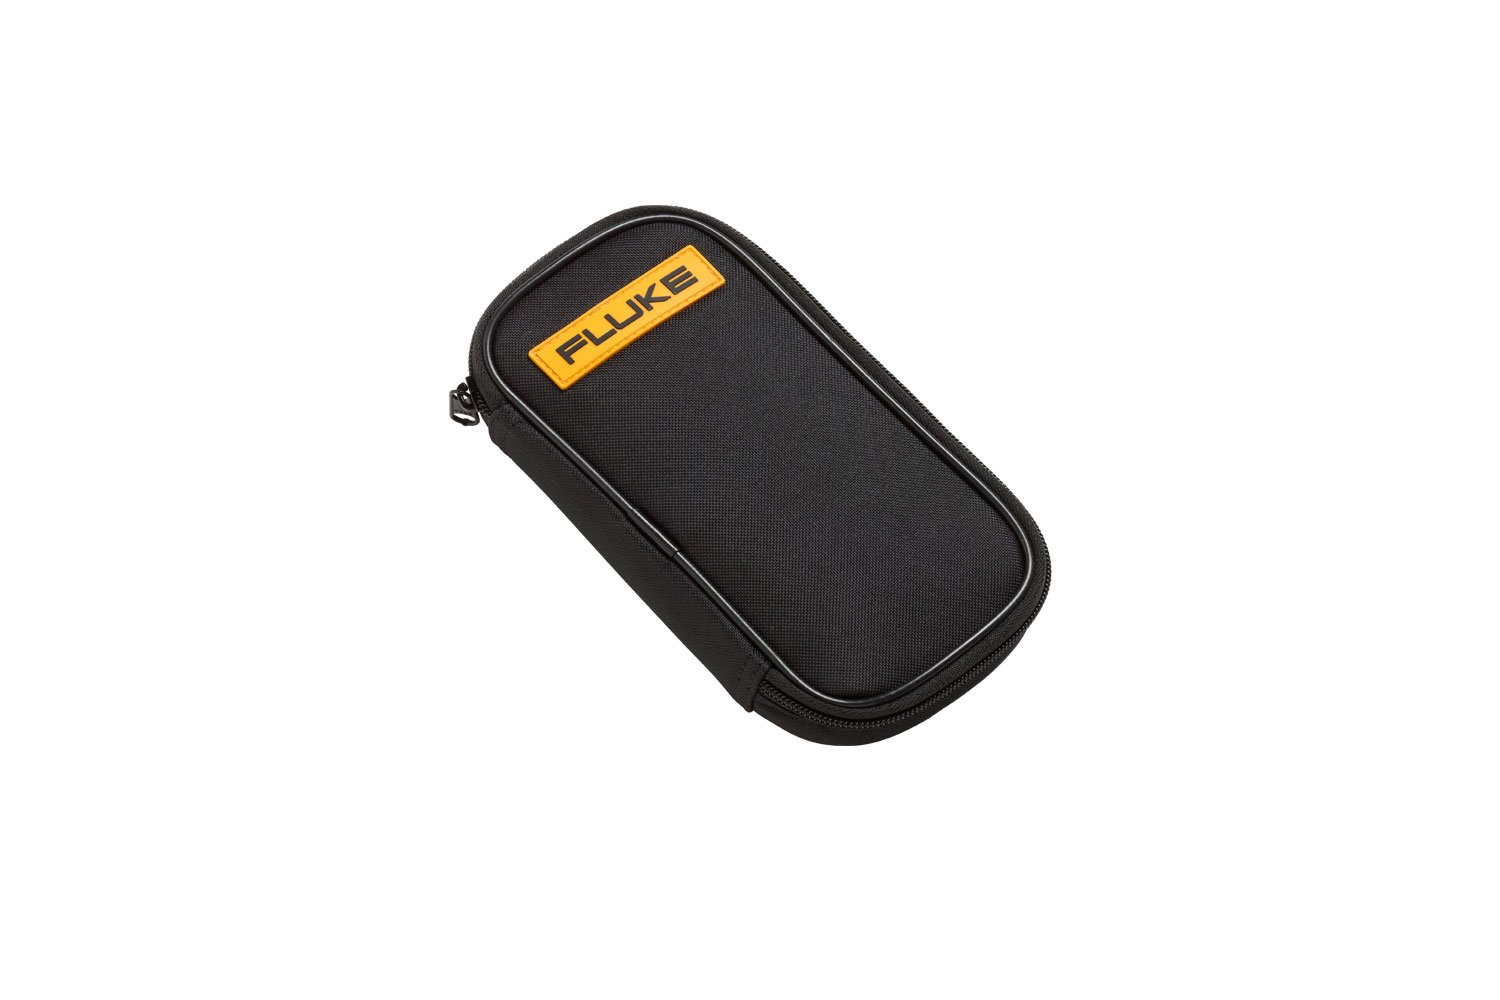 Fluke C50 Carrying Case